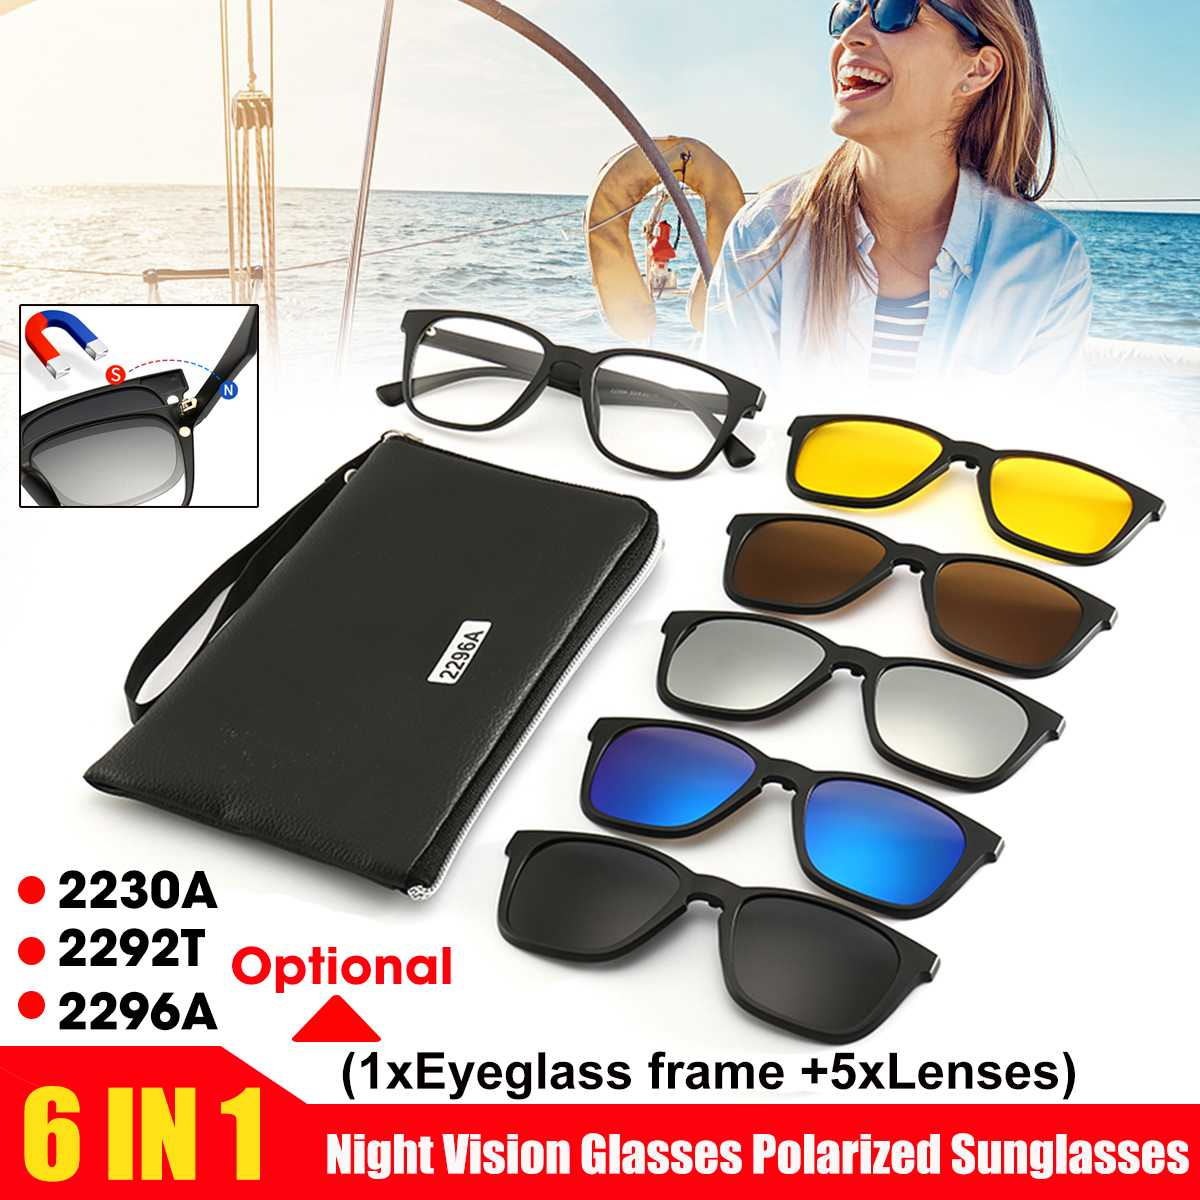 2292T/2230A/2296A <font><b>6</b></font> <font><b>in</b></font> <font><b>1</b></font> Clip On <font><b>Sunglasses</b></font> with Polarized Mirror Flat Night Vision Magnetic Lens Clips Optical Myopia Glasses image